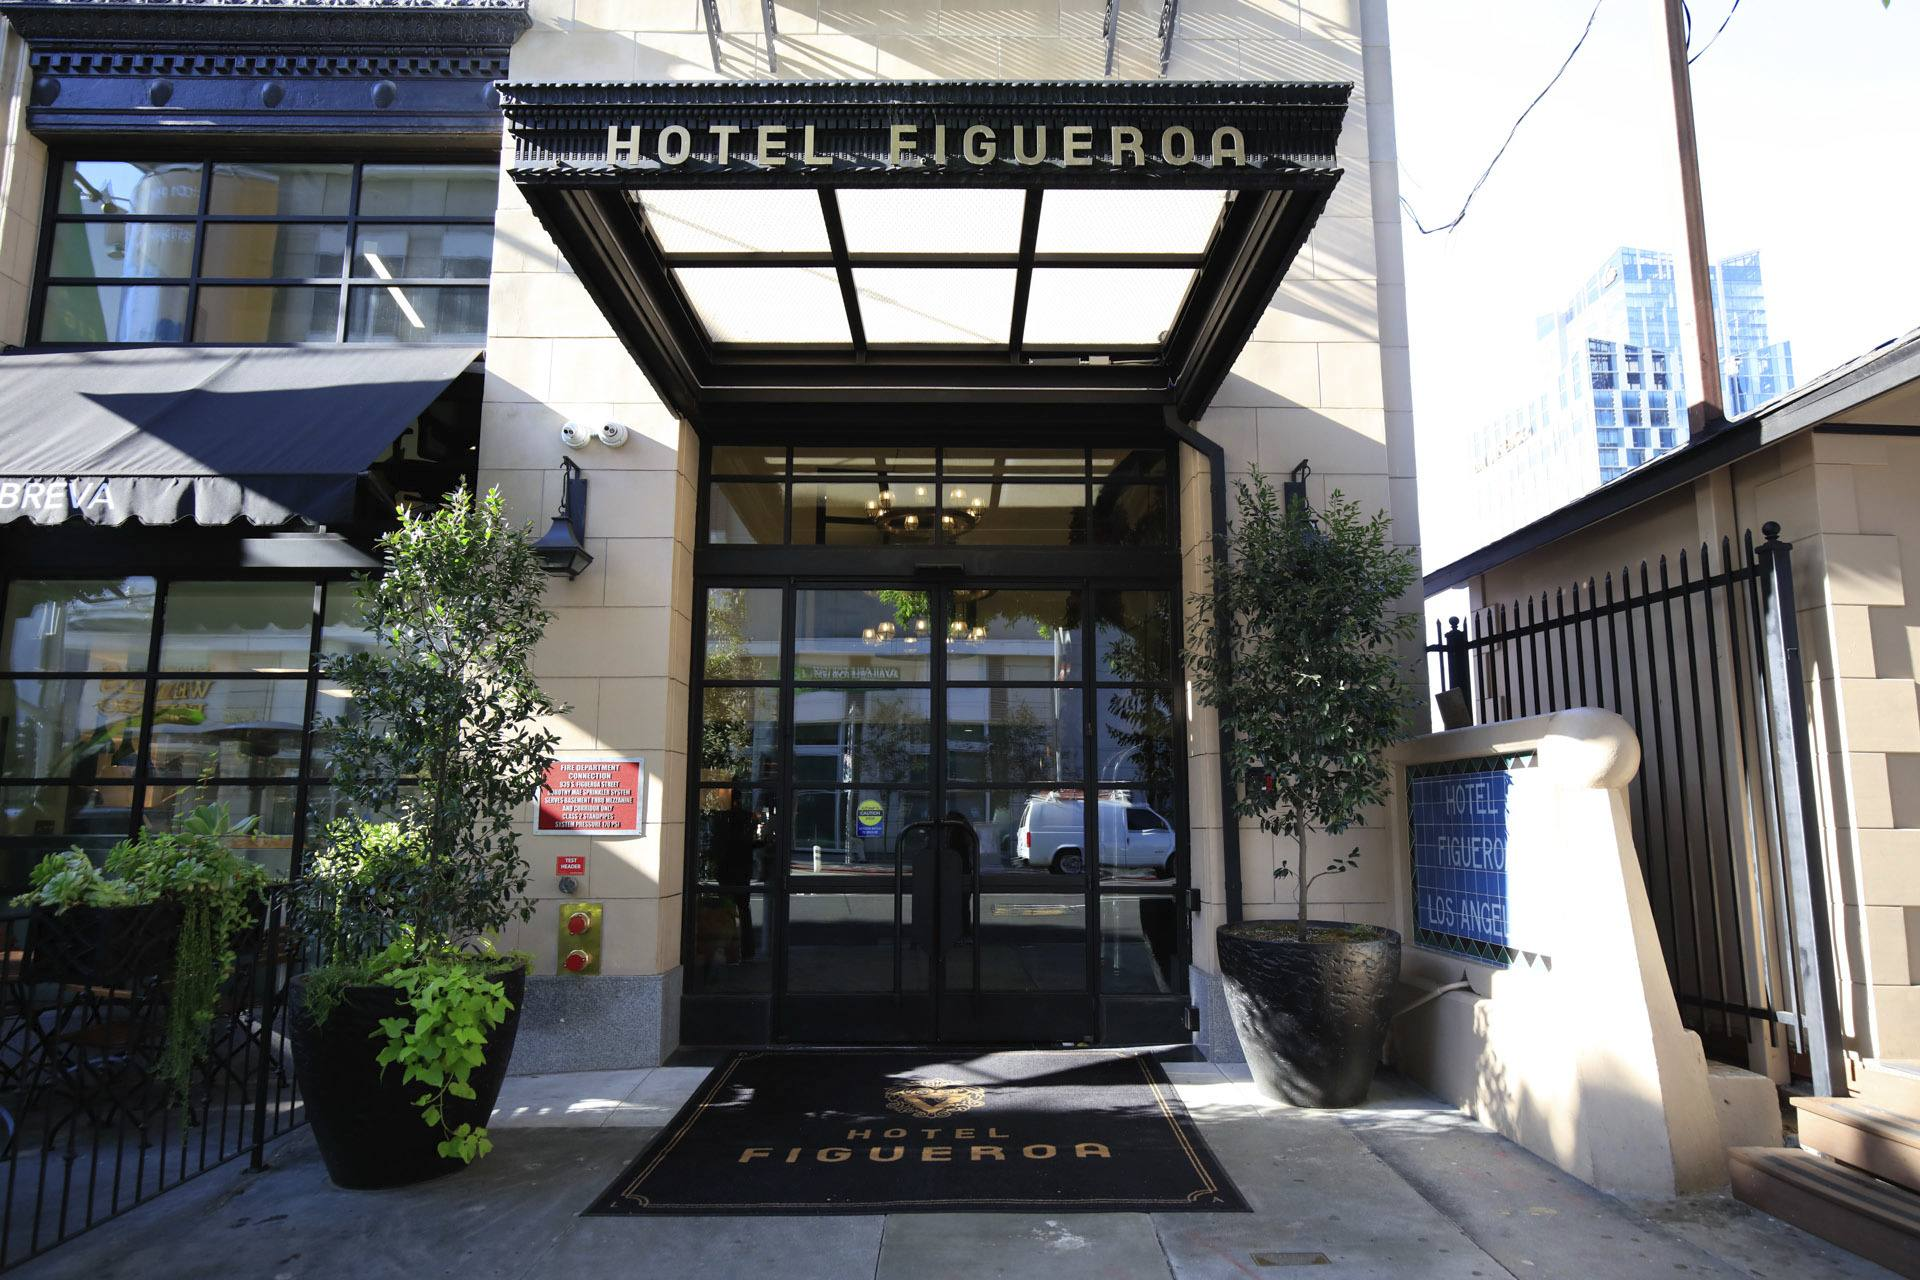 Entrance Hotel Figueroa